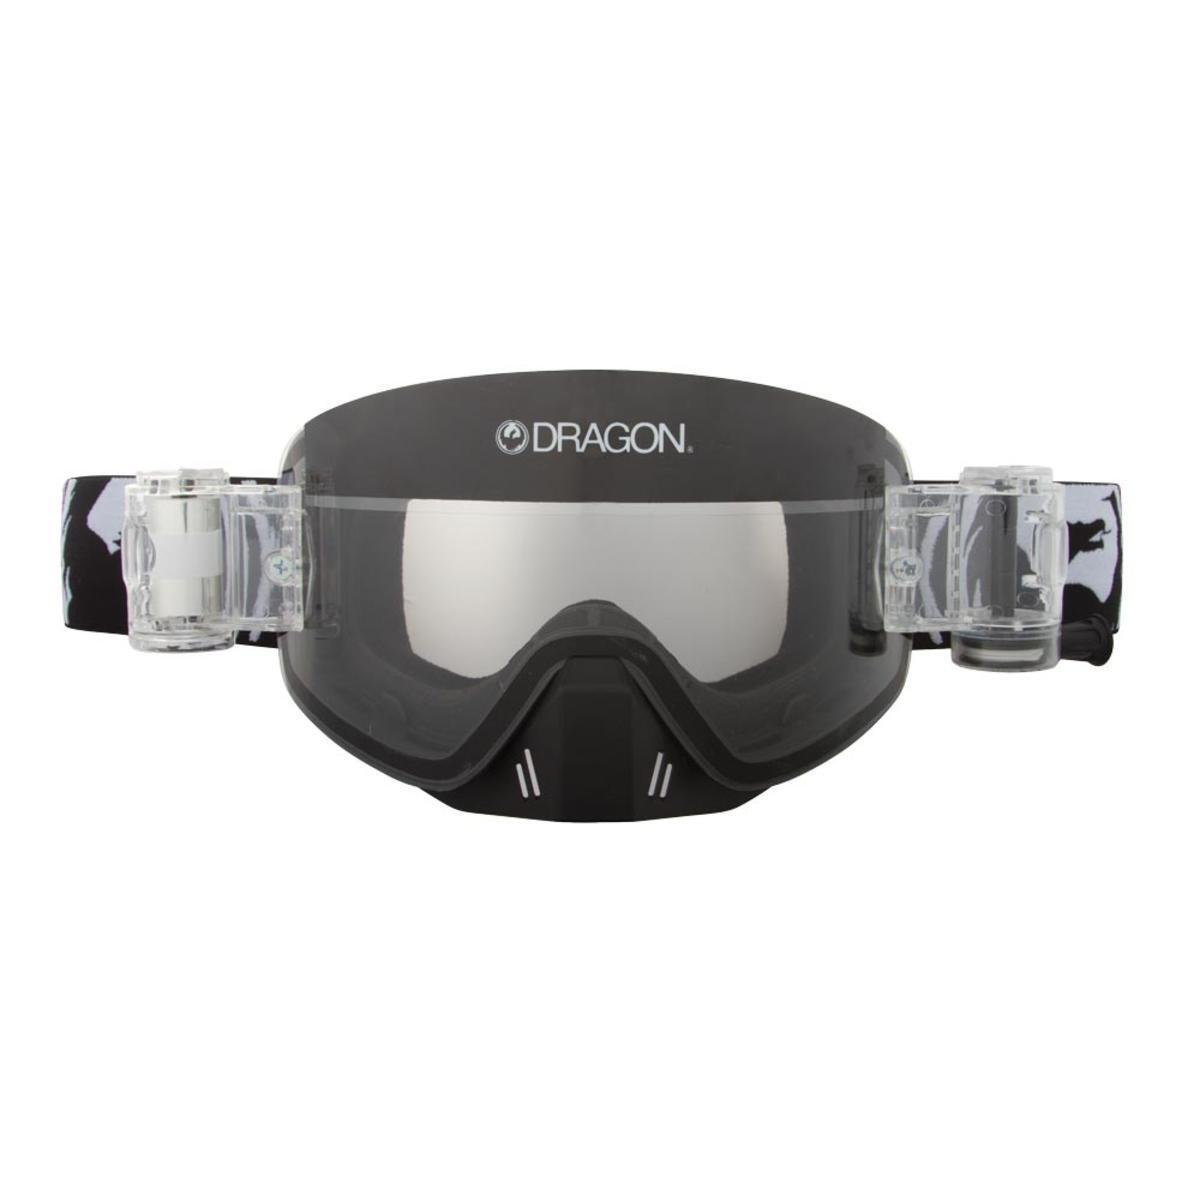 Dragon NFX MX Goggles Coal Clear Dimple Rapid Roll Clear